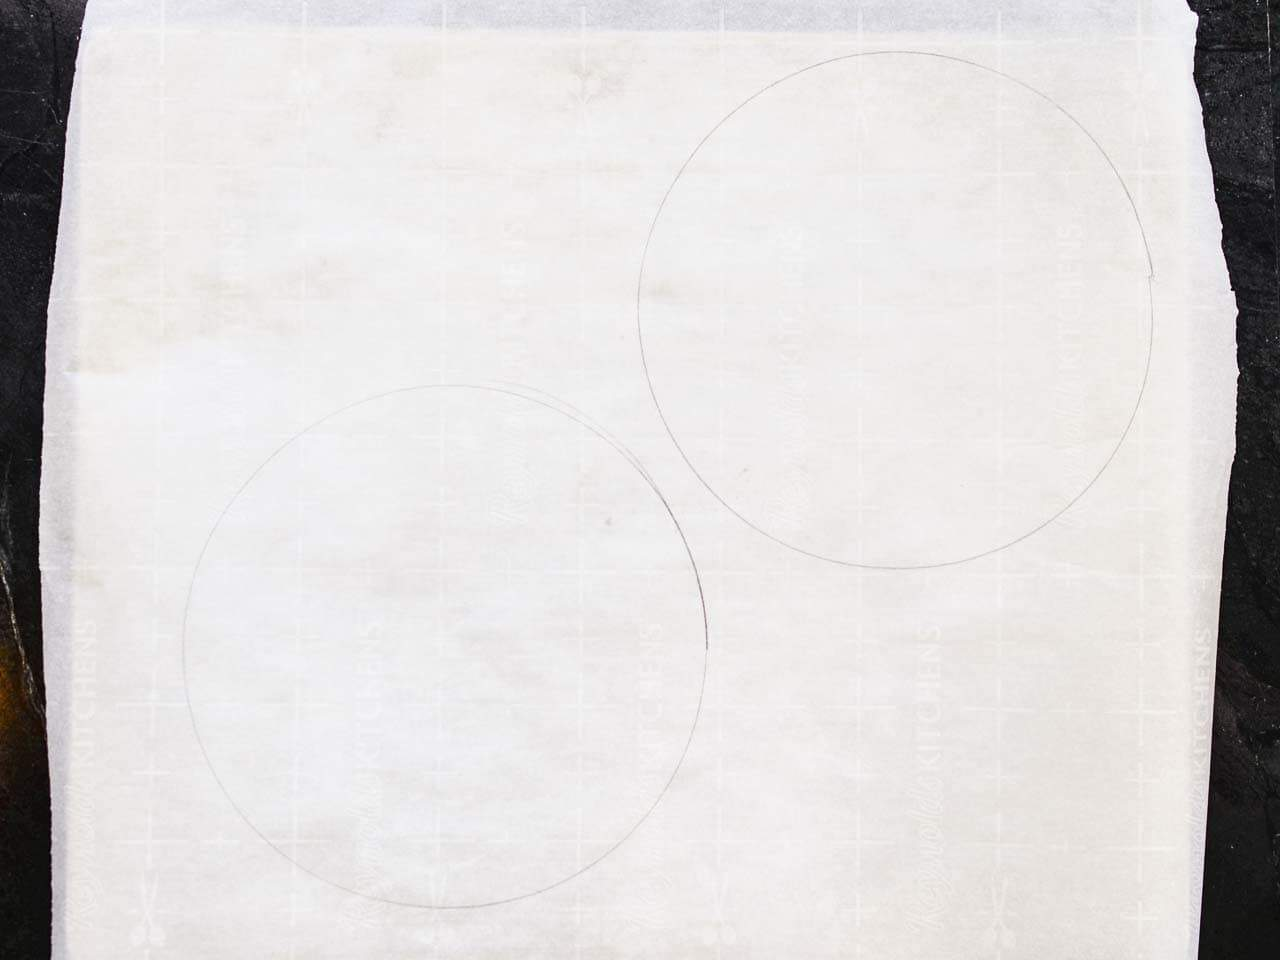 parchement paper with circles for making pavlova